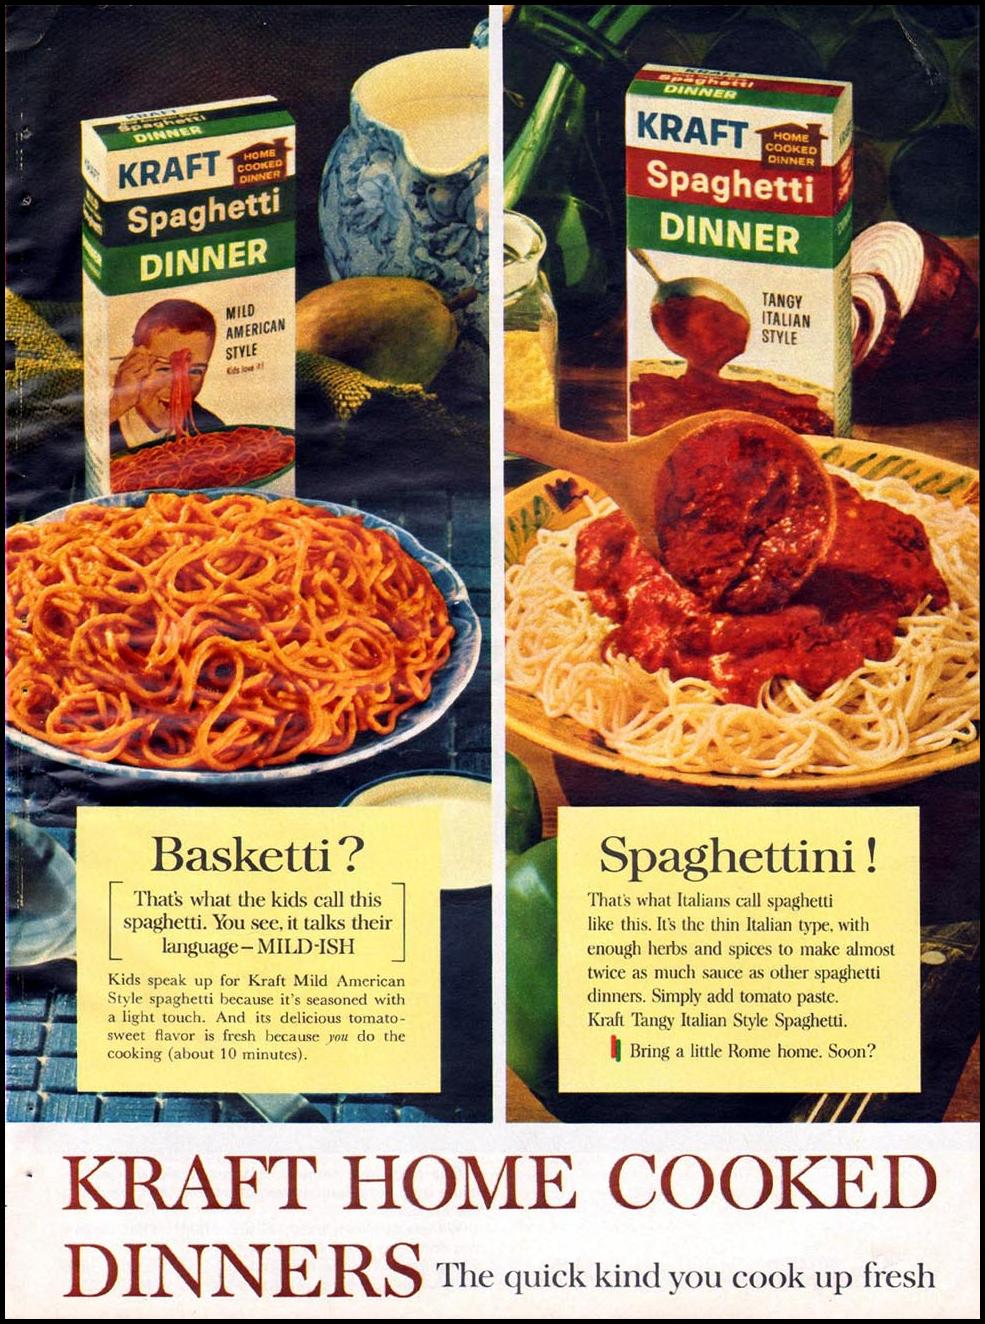 KRAFT SPAGHETTI DINNER GOOD HOUSEKEEPING 10/01/1965 p. 51